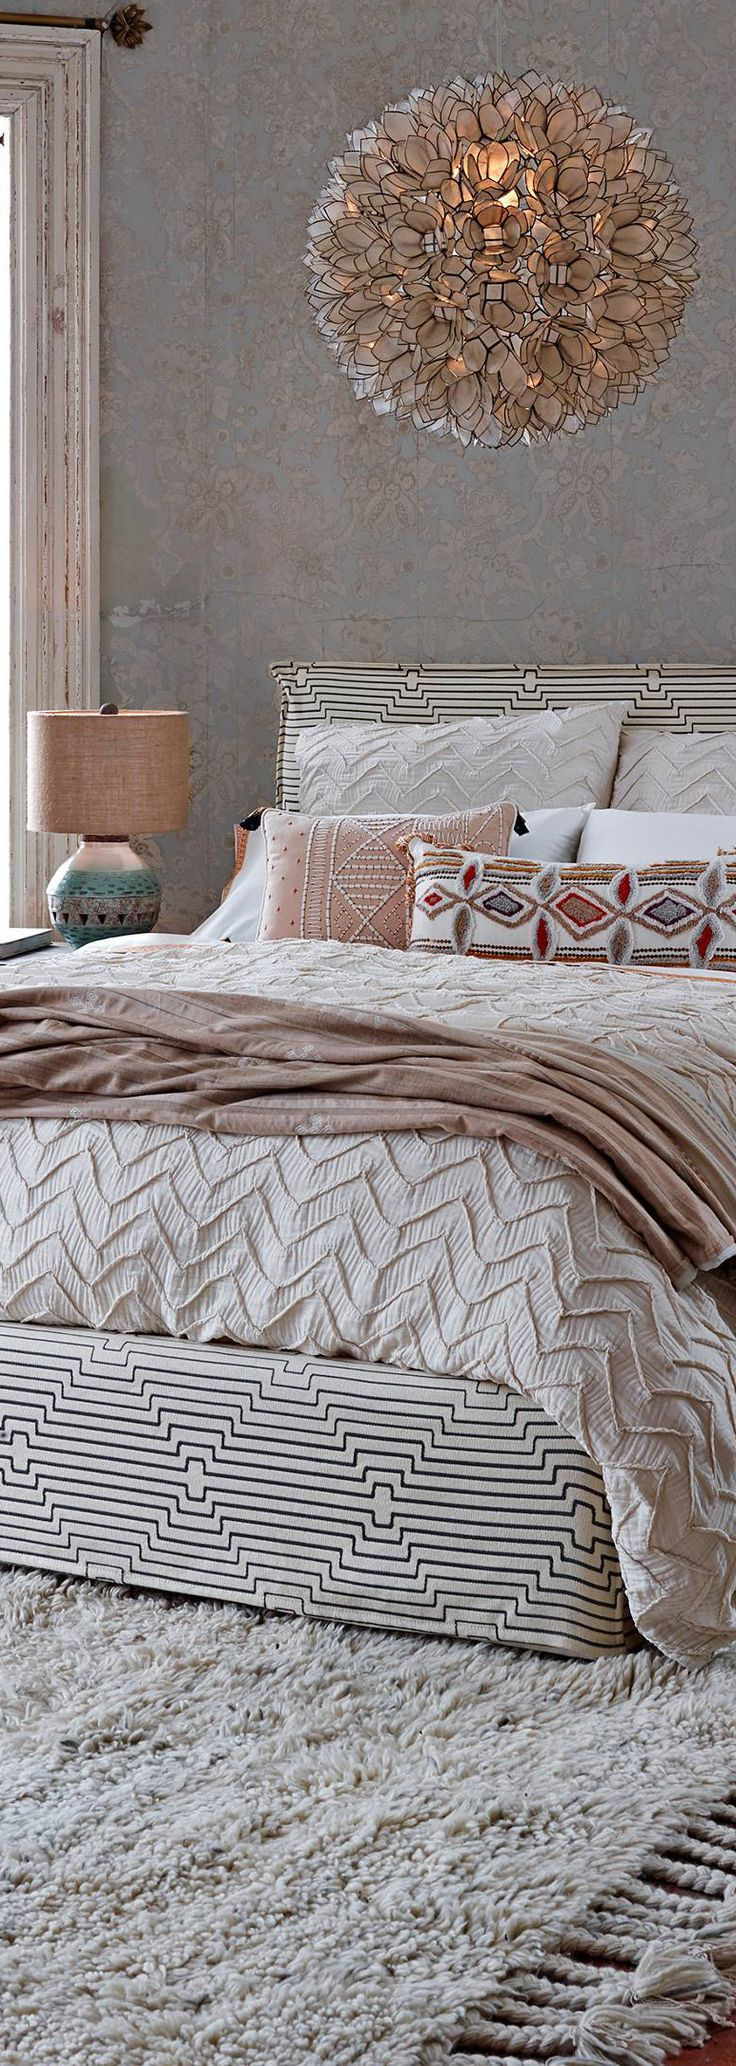 best  unique duvet covers ideas on pinterest  modern duvets  - textured chevron duvet cover manchesterwarehouse